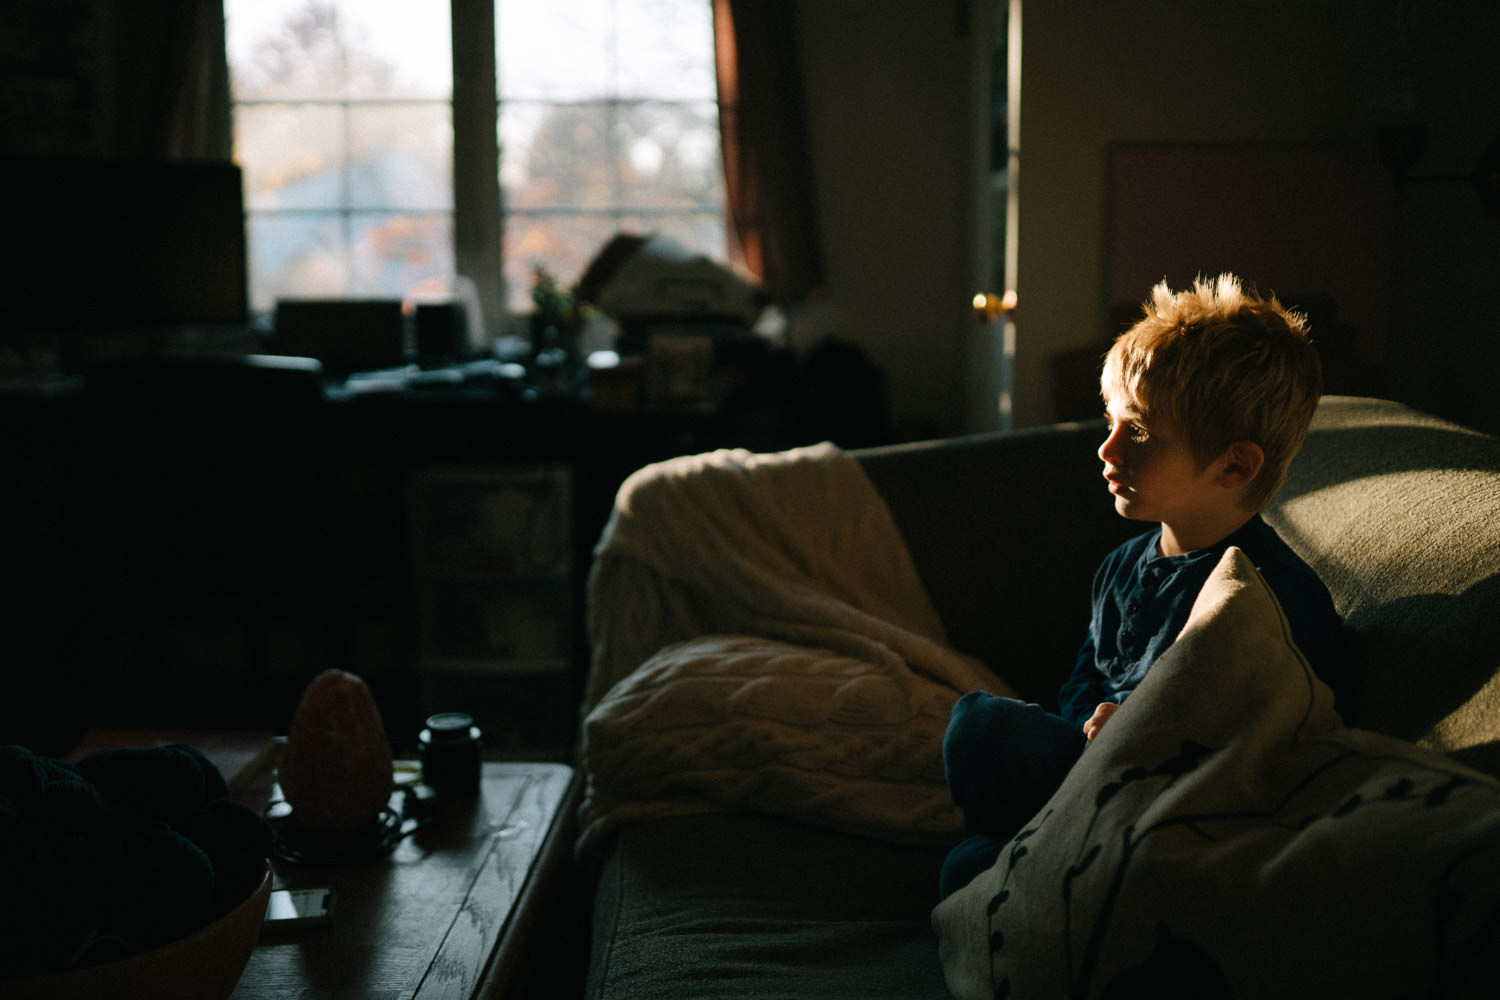 A little boy sits on a couch with golden sunlight shining on him